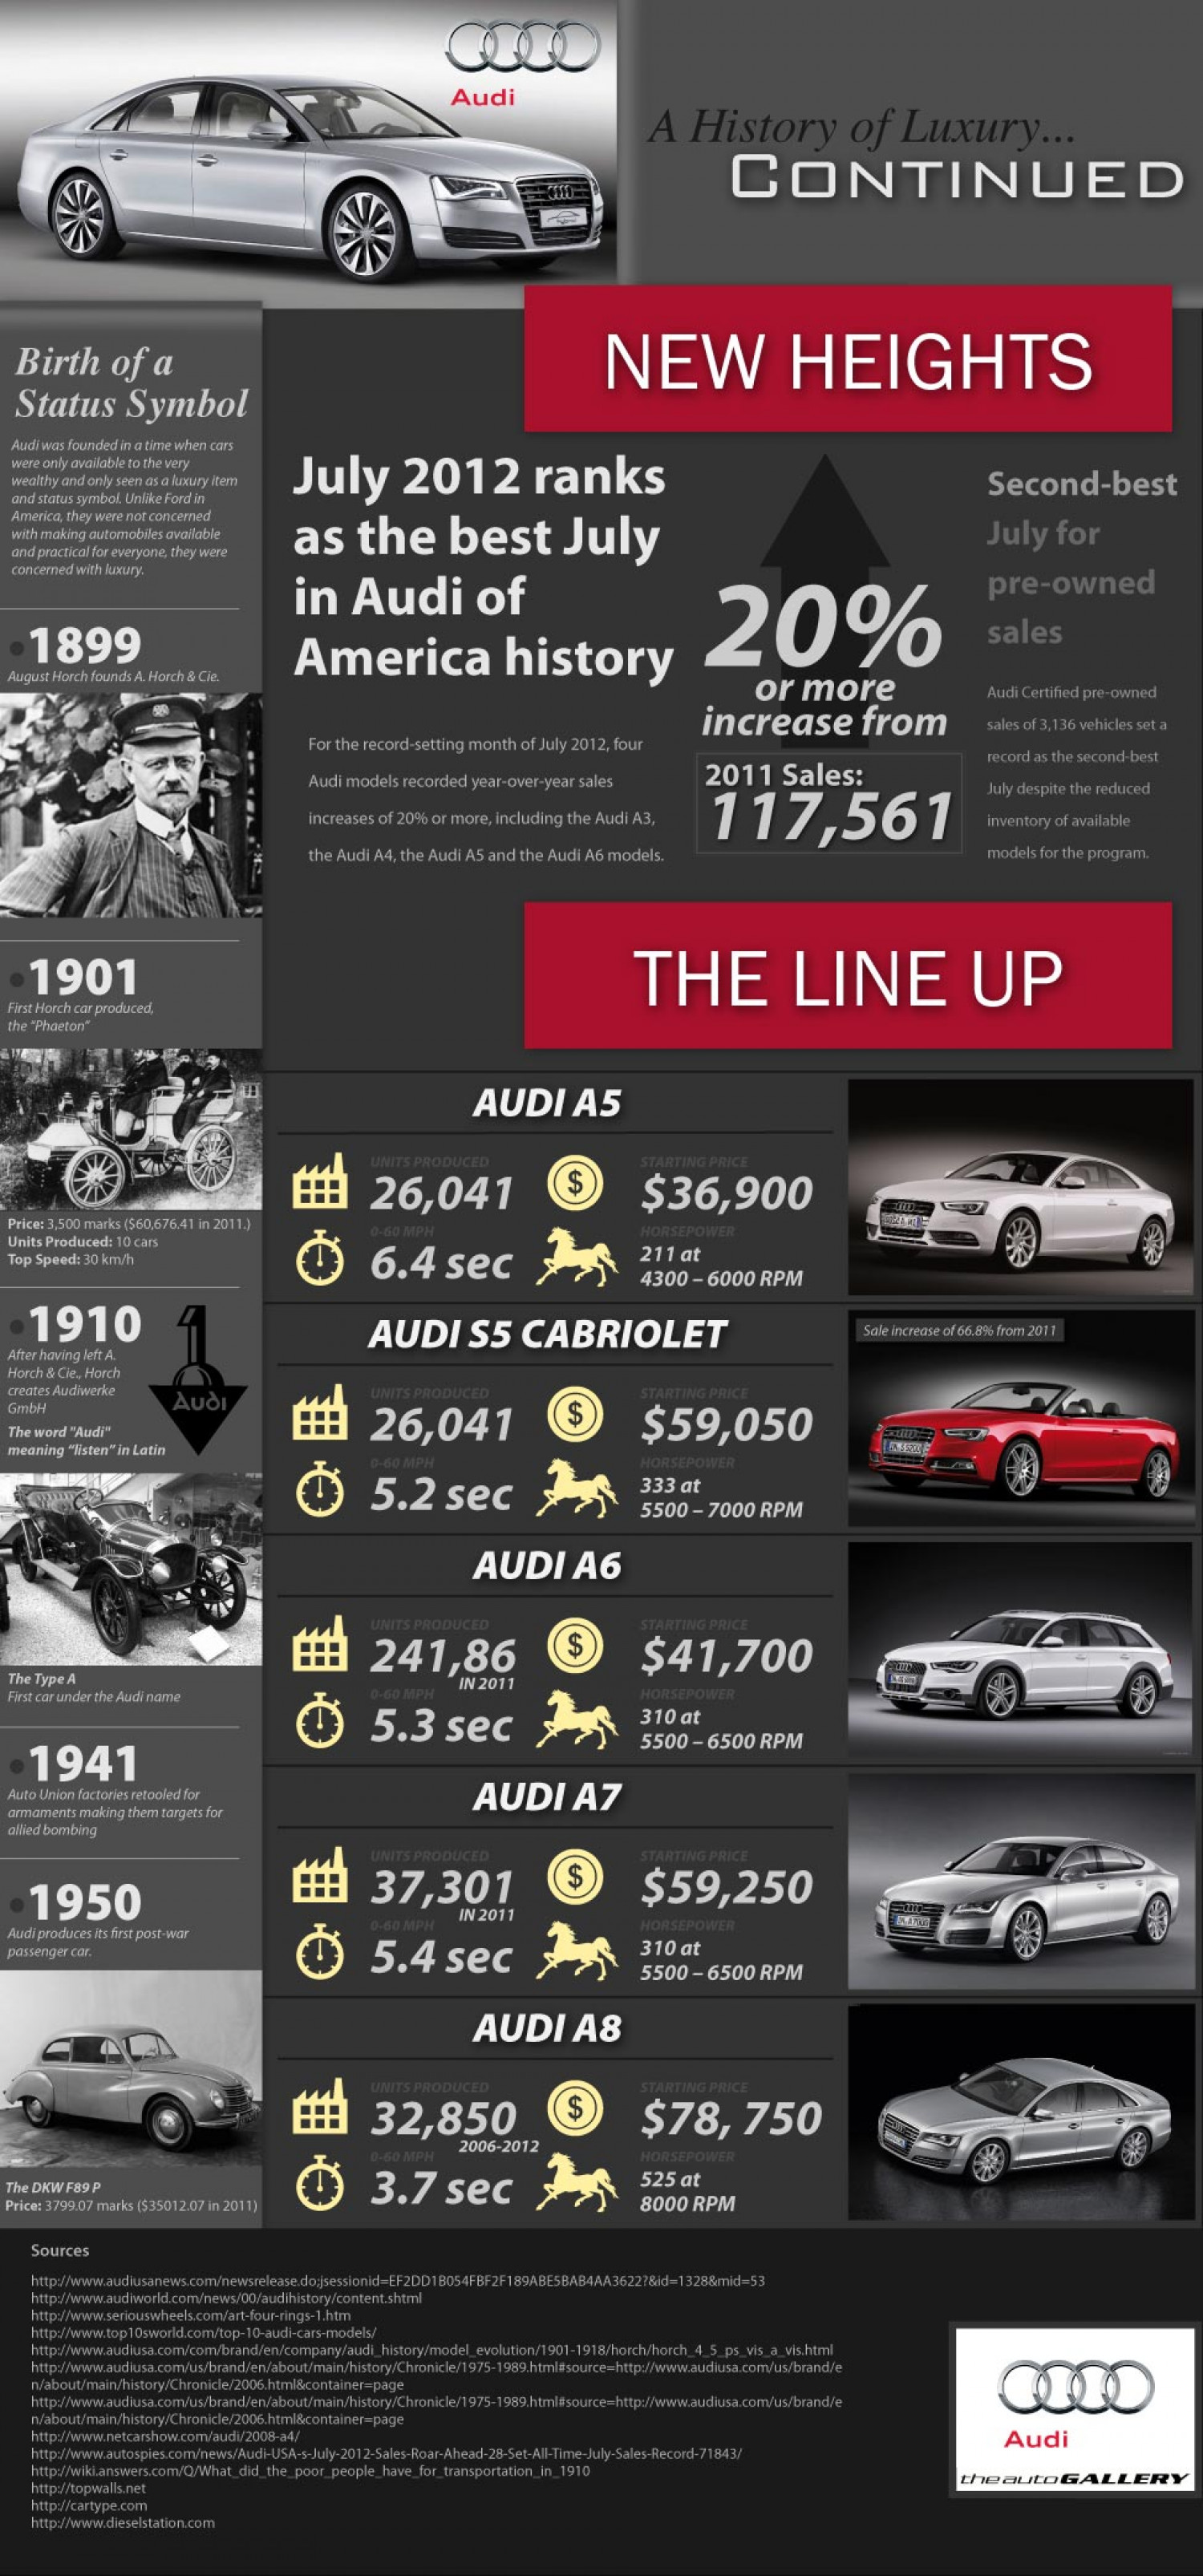 A History of Luxury...Continued Infographic